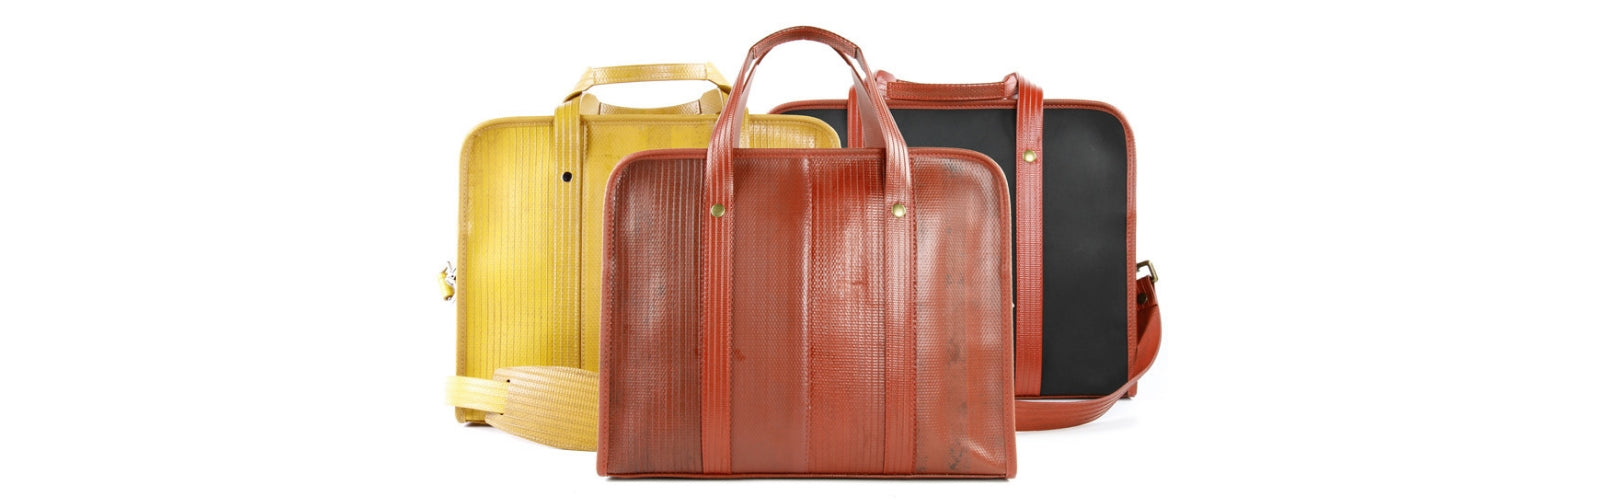 Eco-friendly recycled briefcases - upcyced fire-hose and printing blanket - Elvis & Kresse